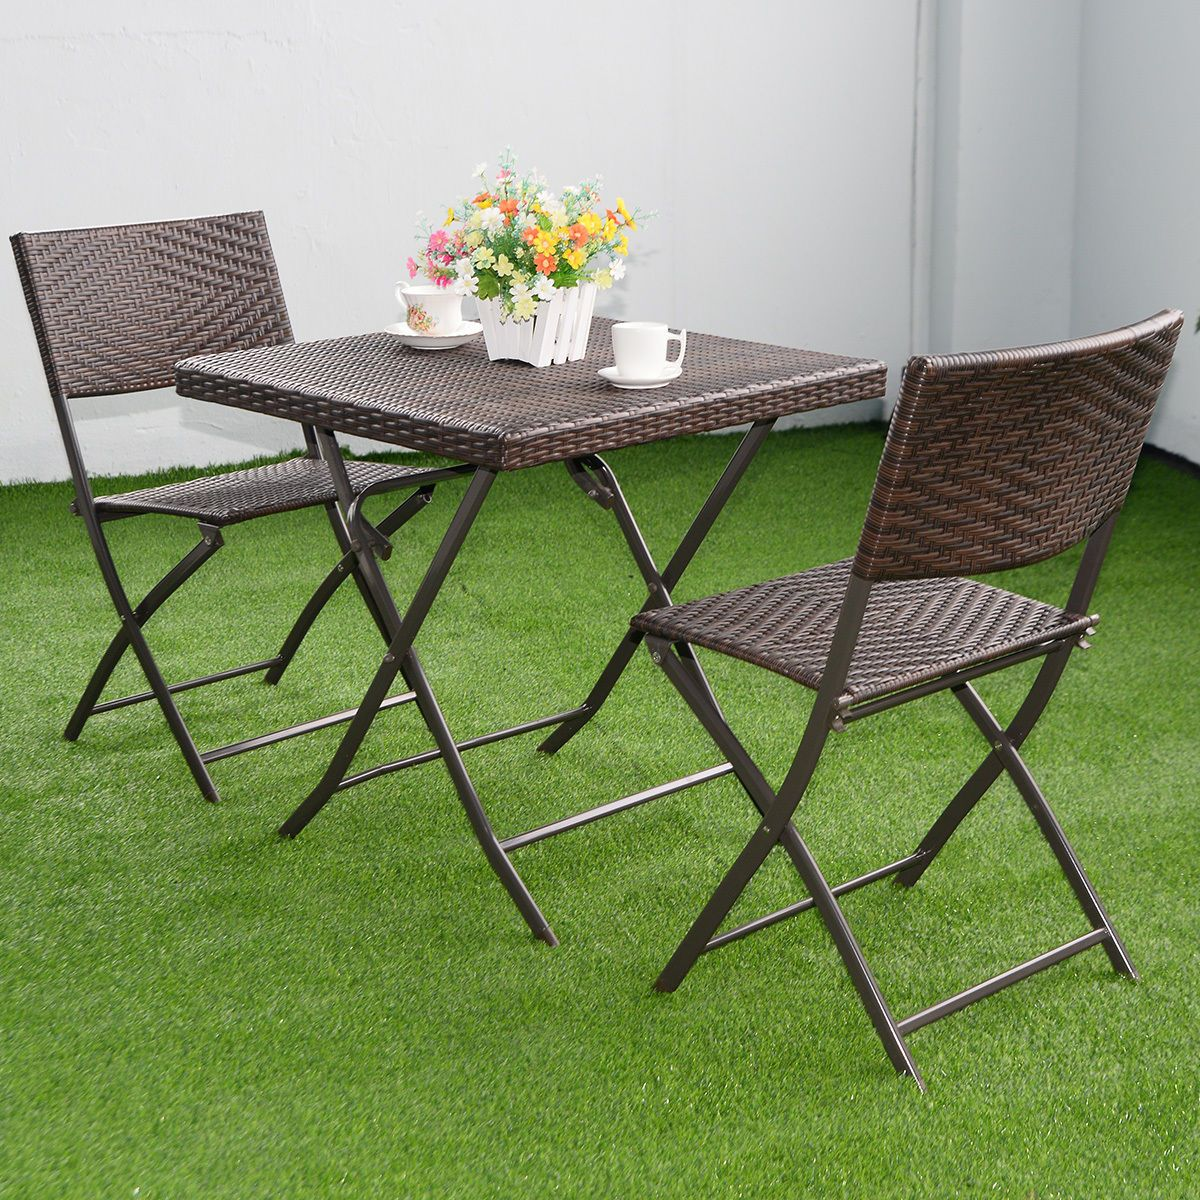 3 pc outdoor folding table chair furniture set rattan wicker bistro patio brown